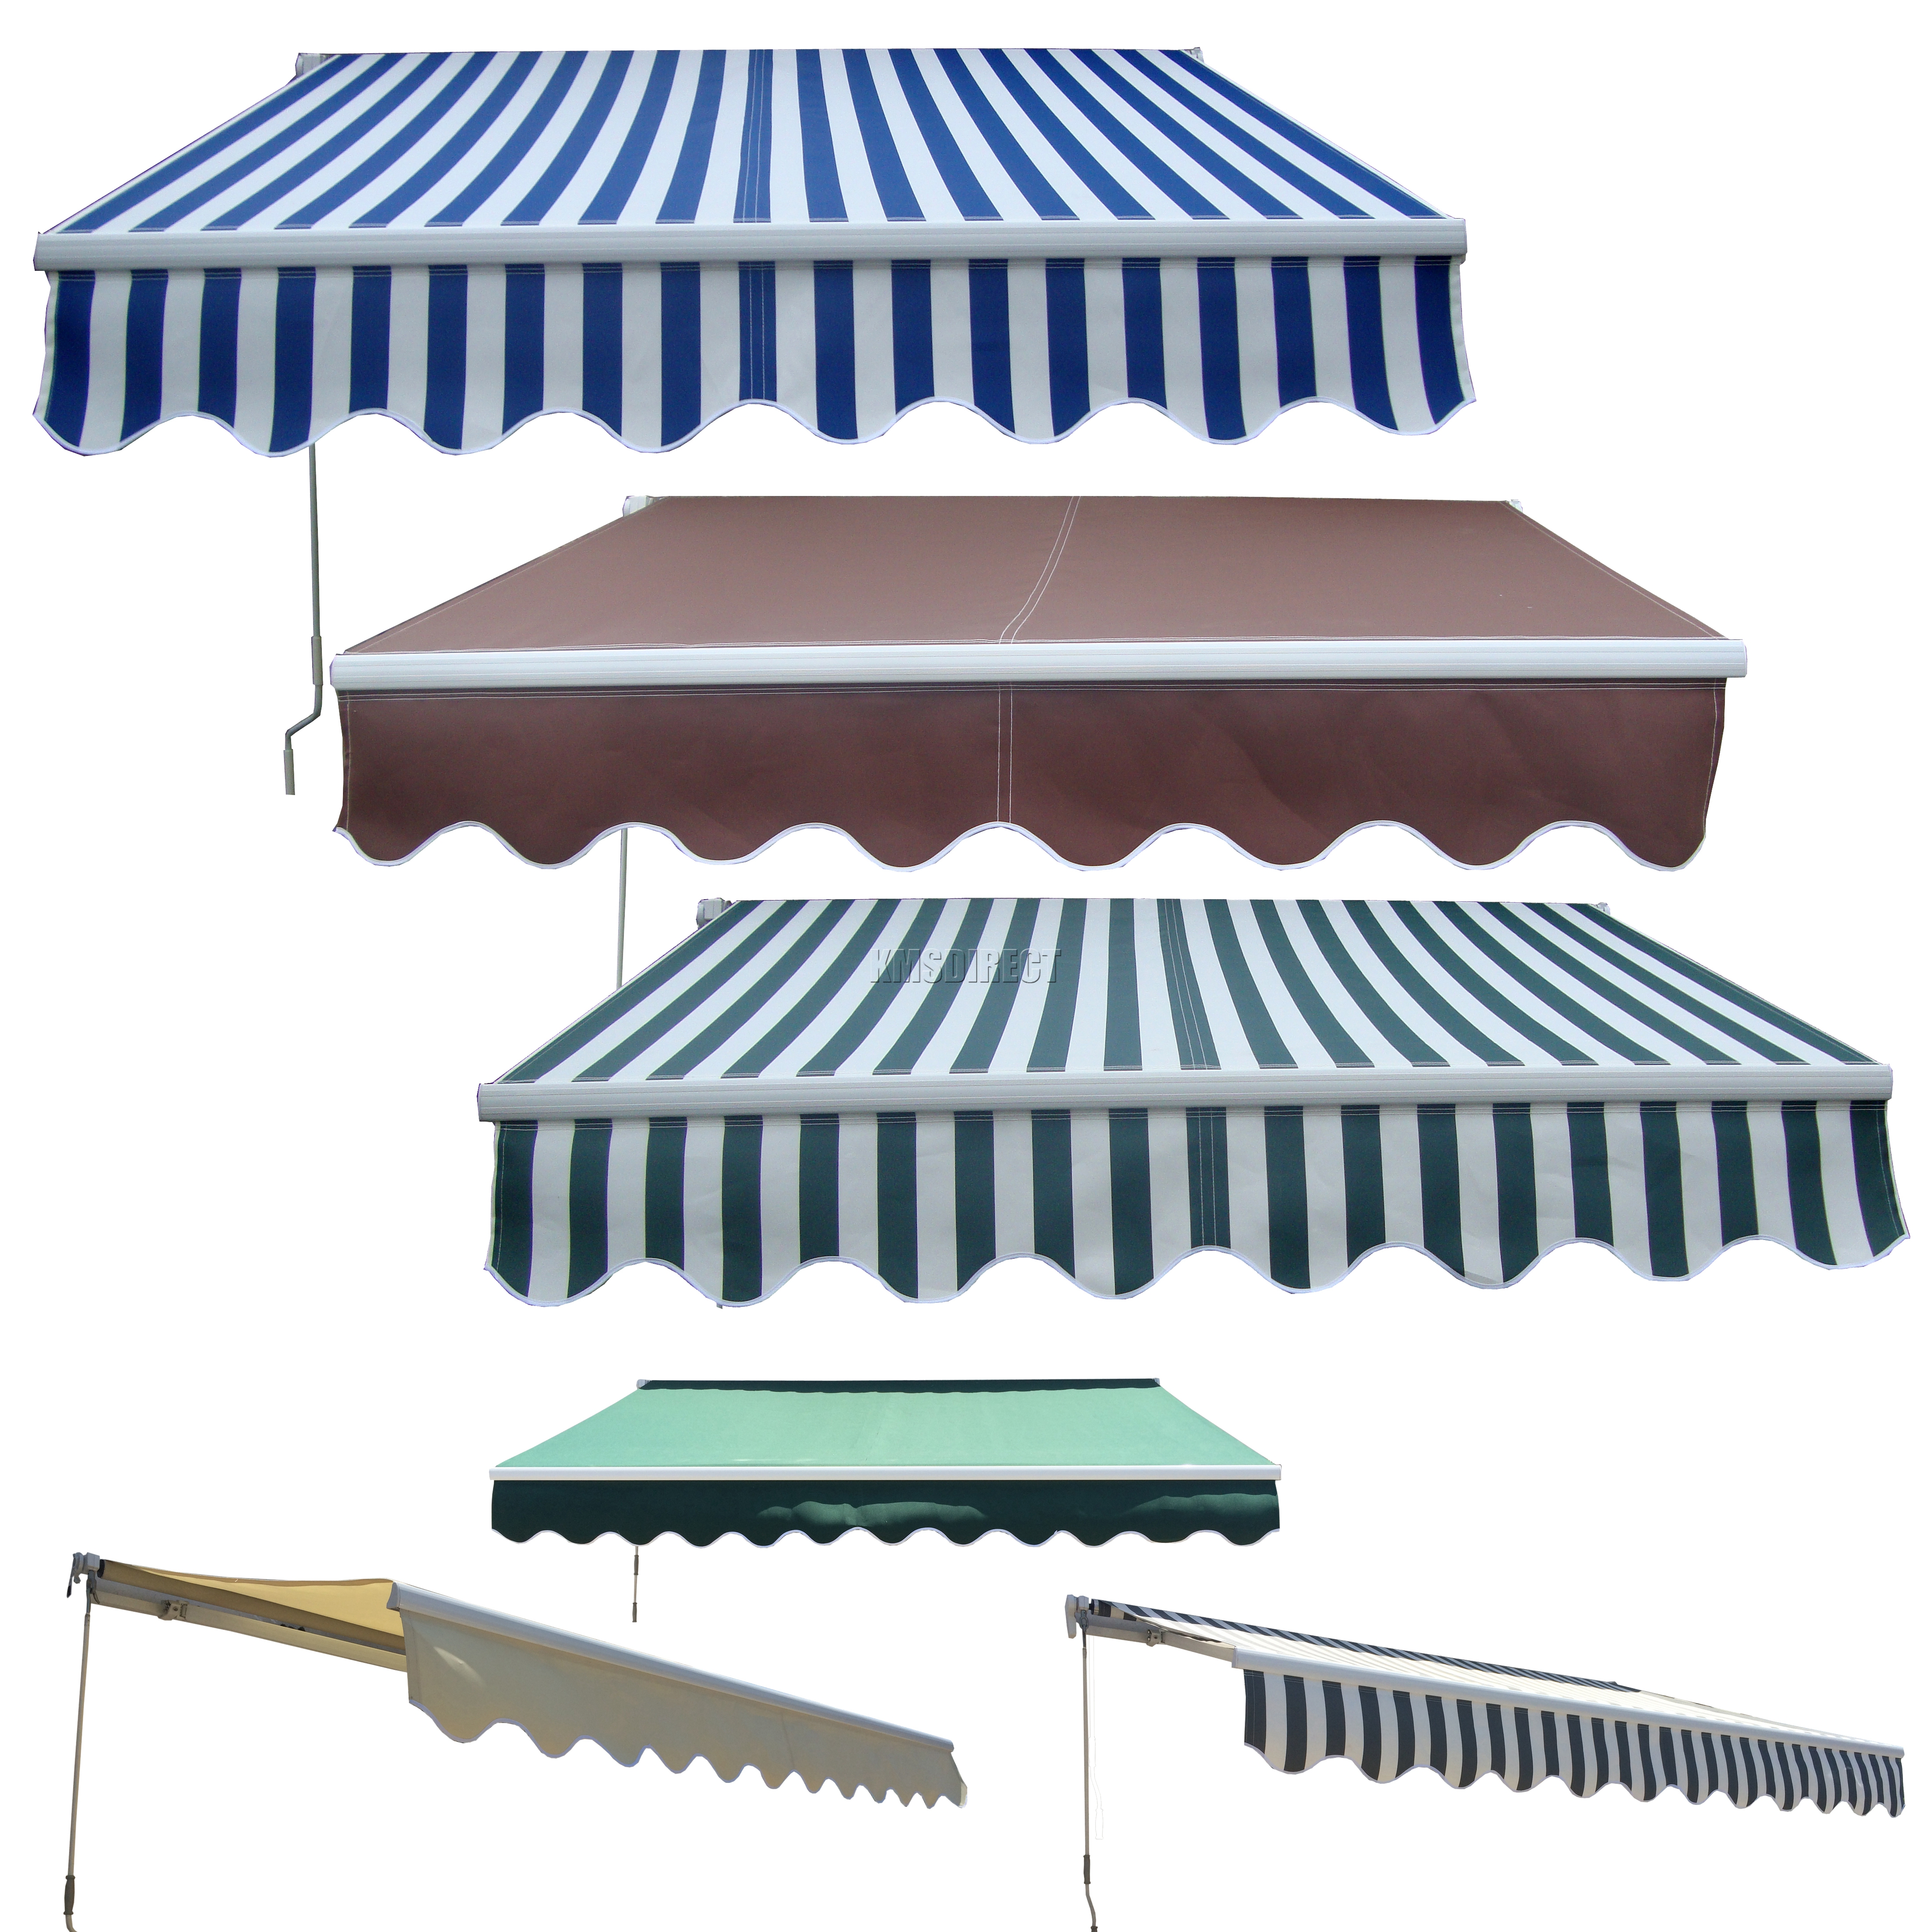 new manual aluminium retractable awning canopy garden patio sun shade shelter - Canopy